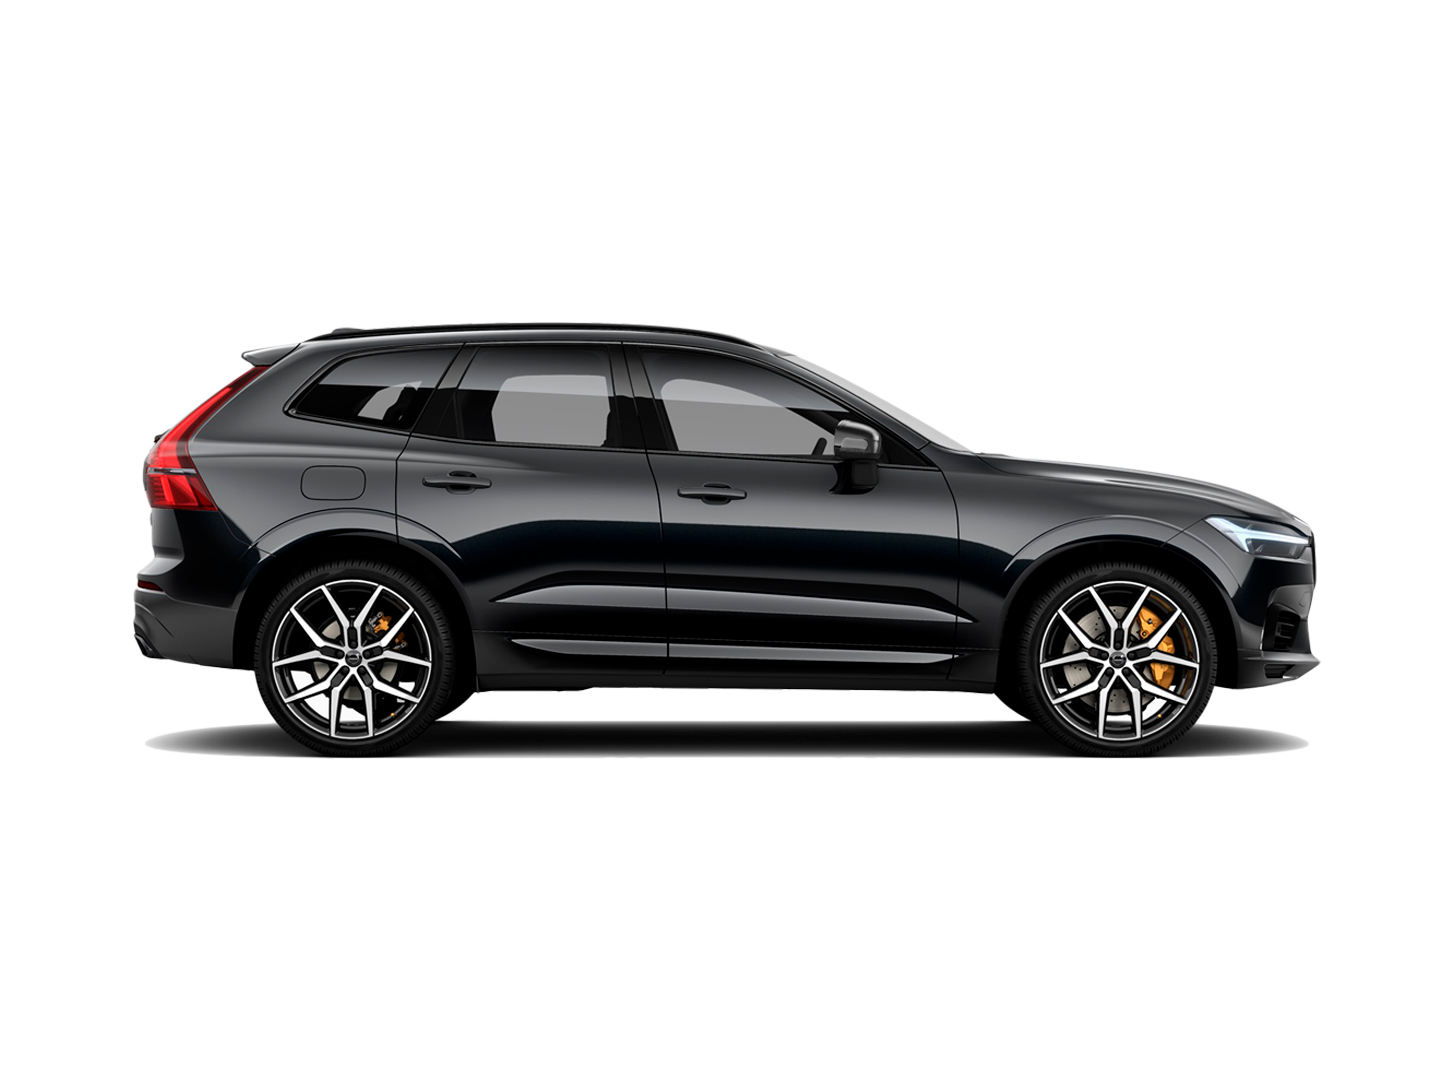 2.0 T8 HYBRID POLESTAR ENGINEERED AWD GEARTRONIC